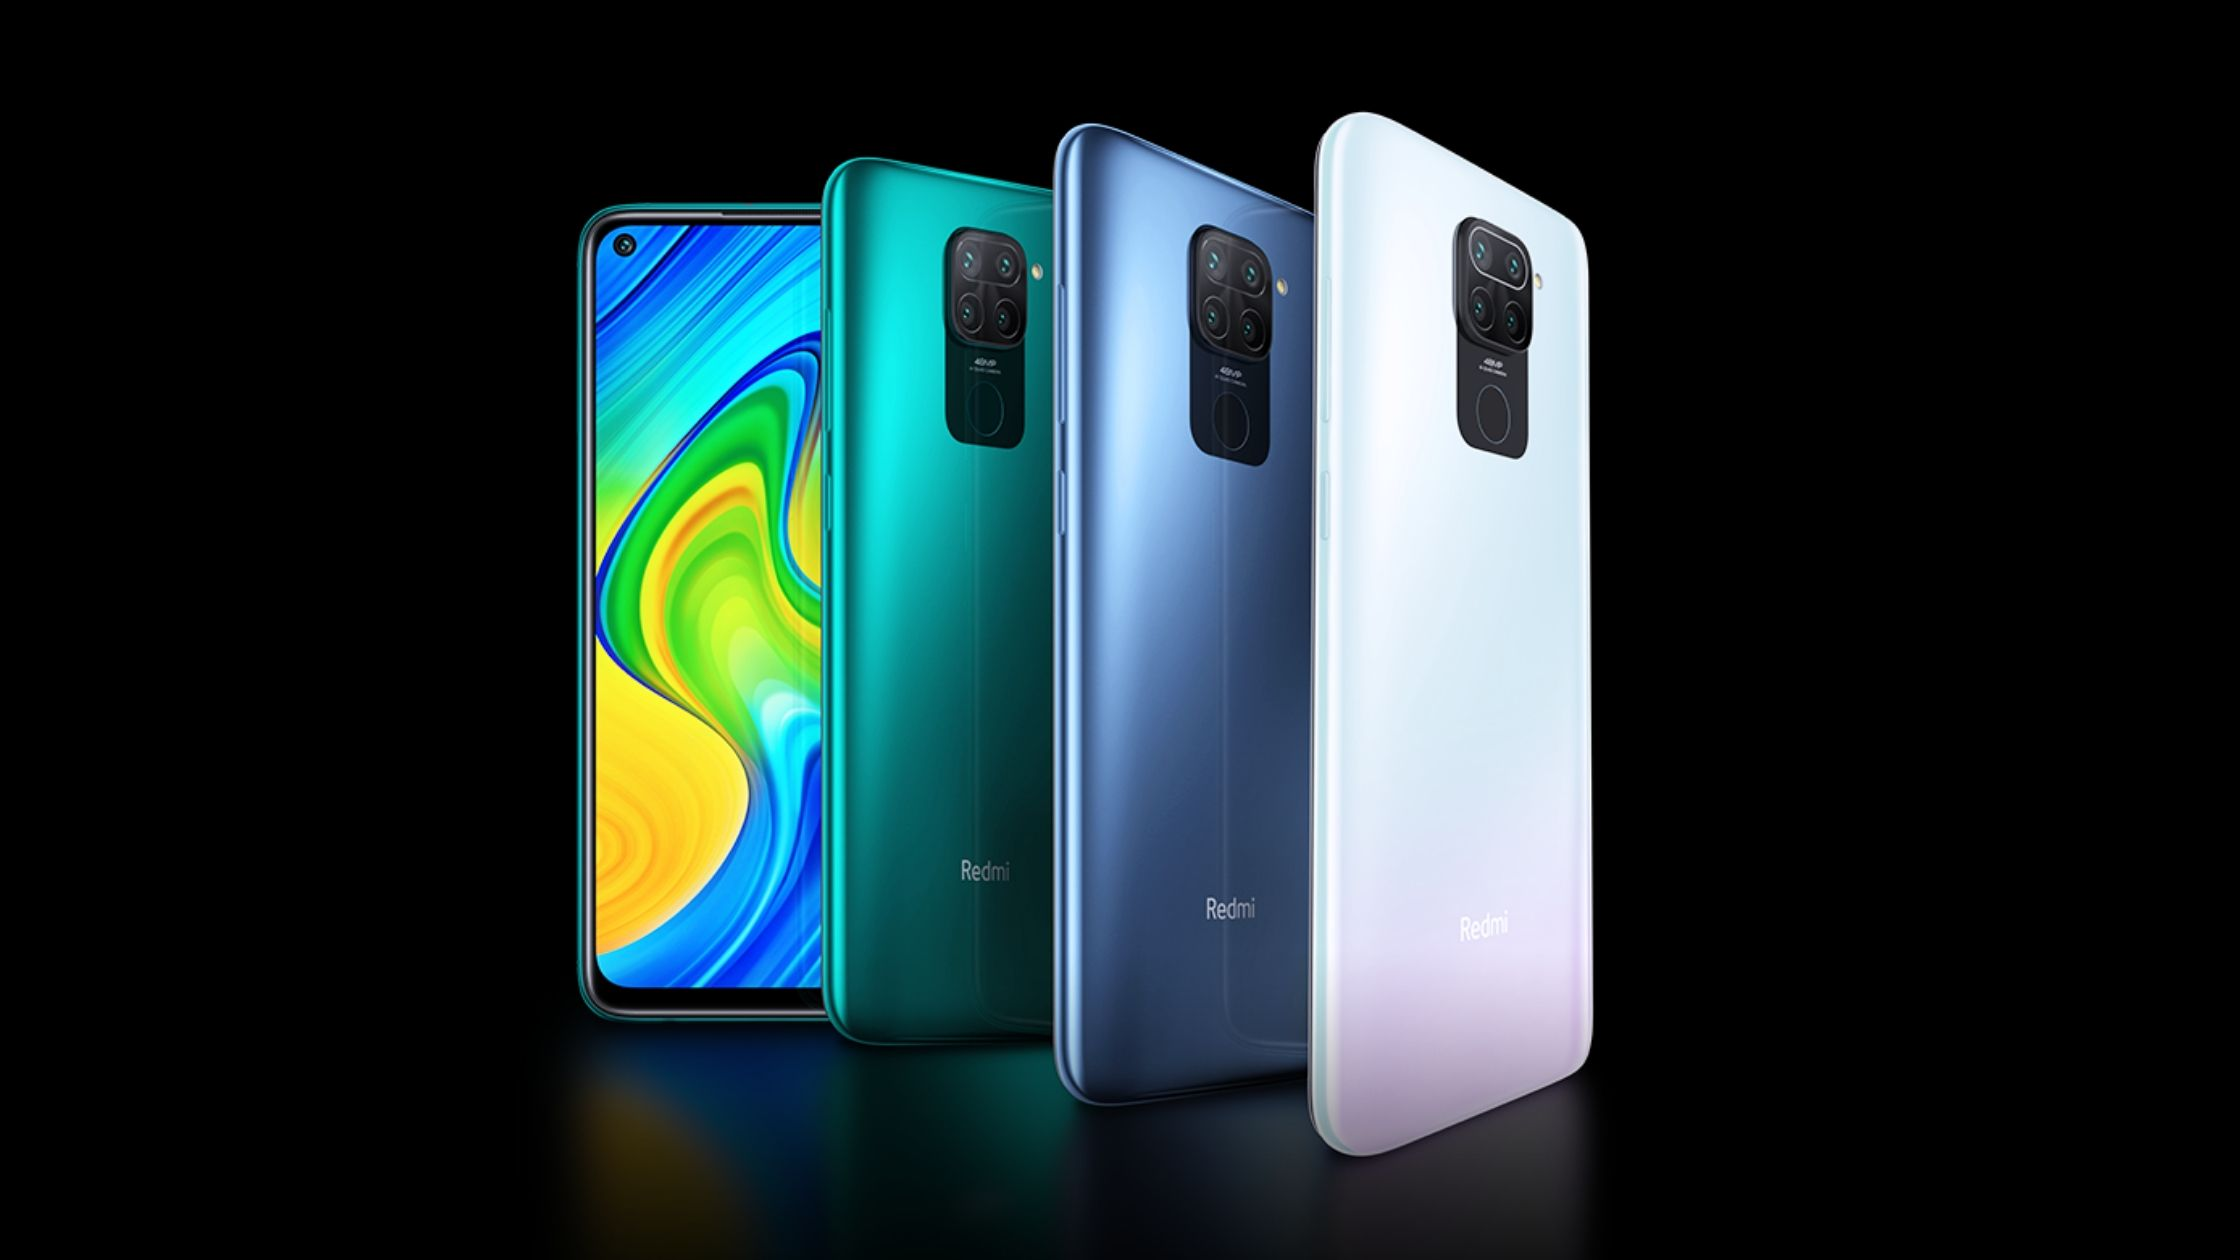 Redmi note 9 - Specs and Price